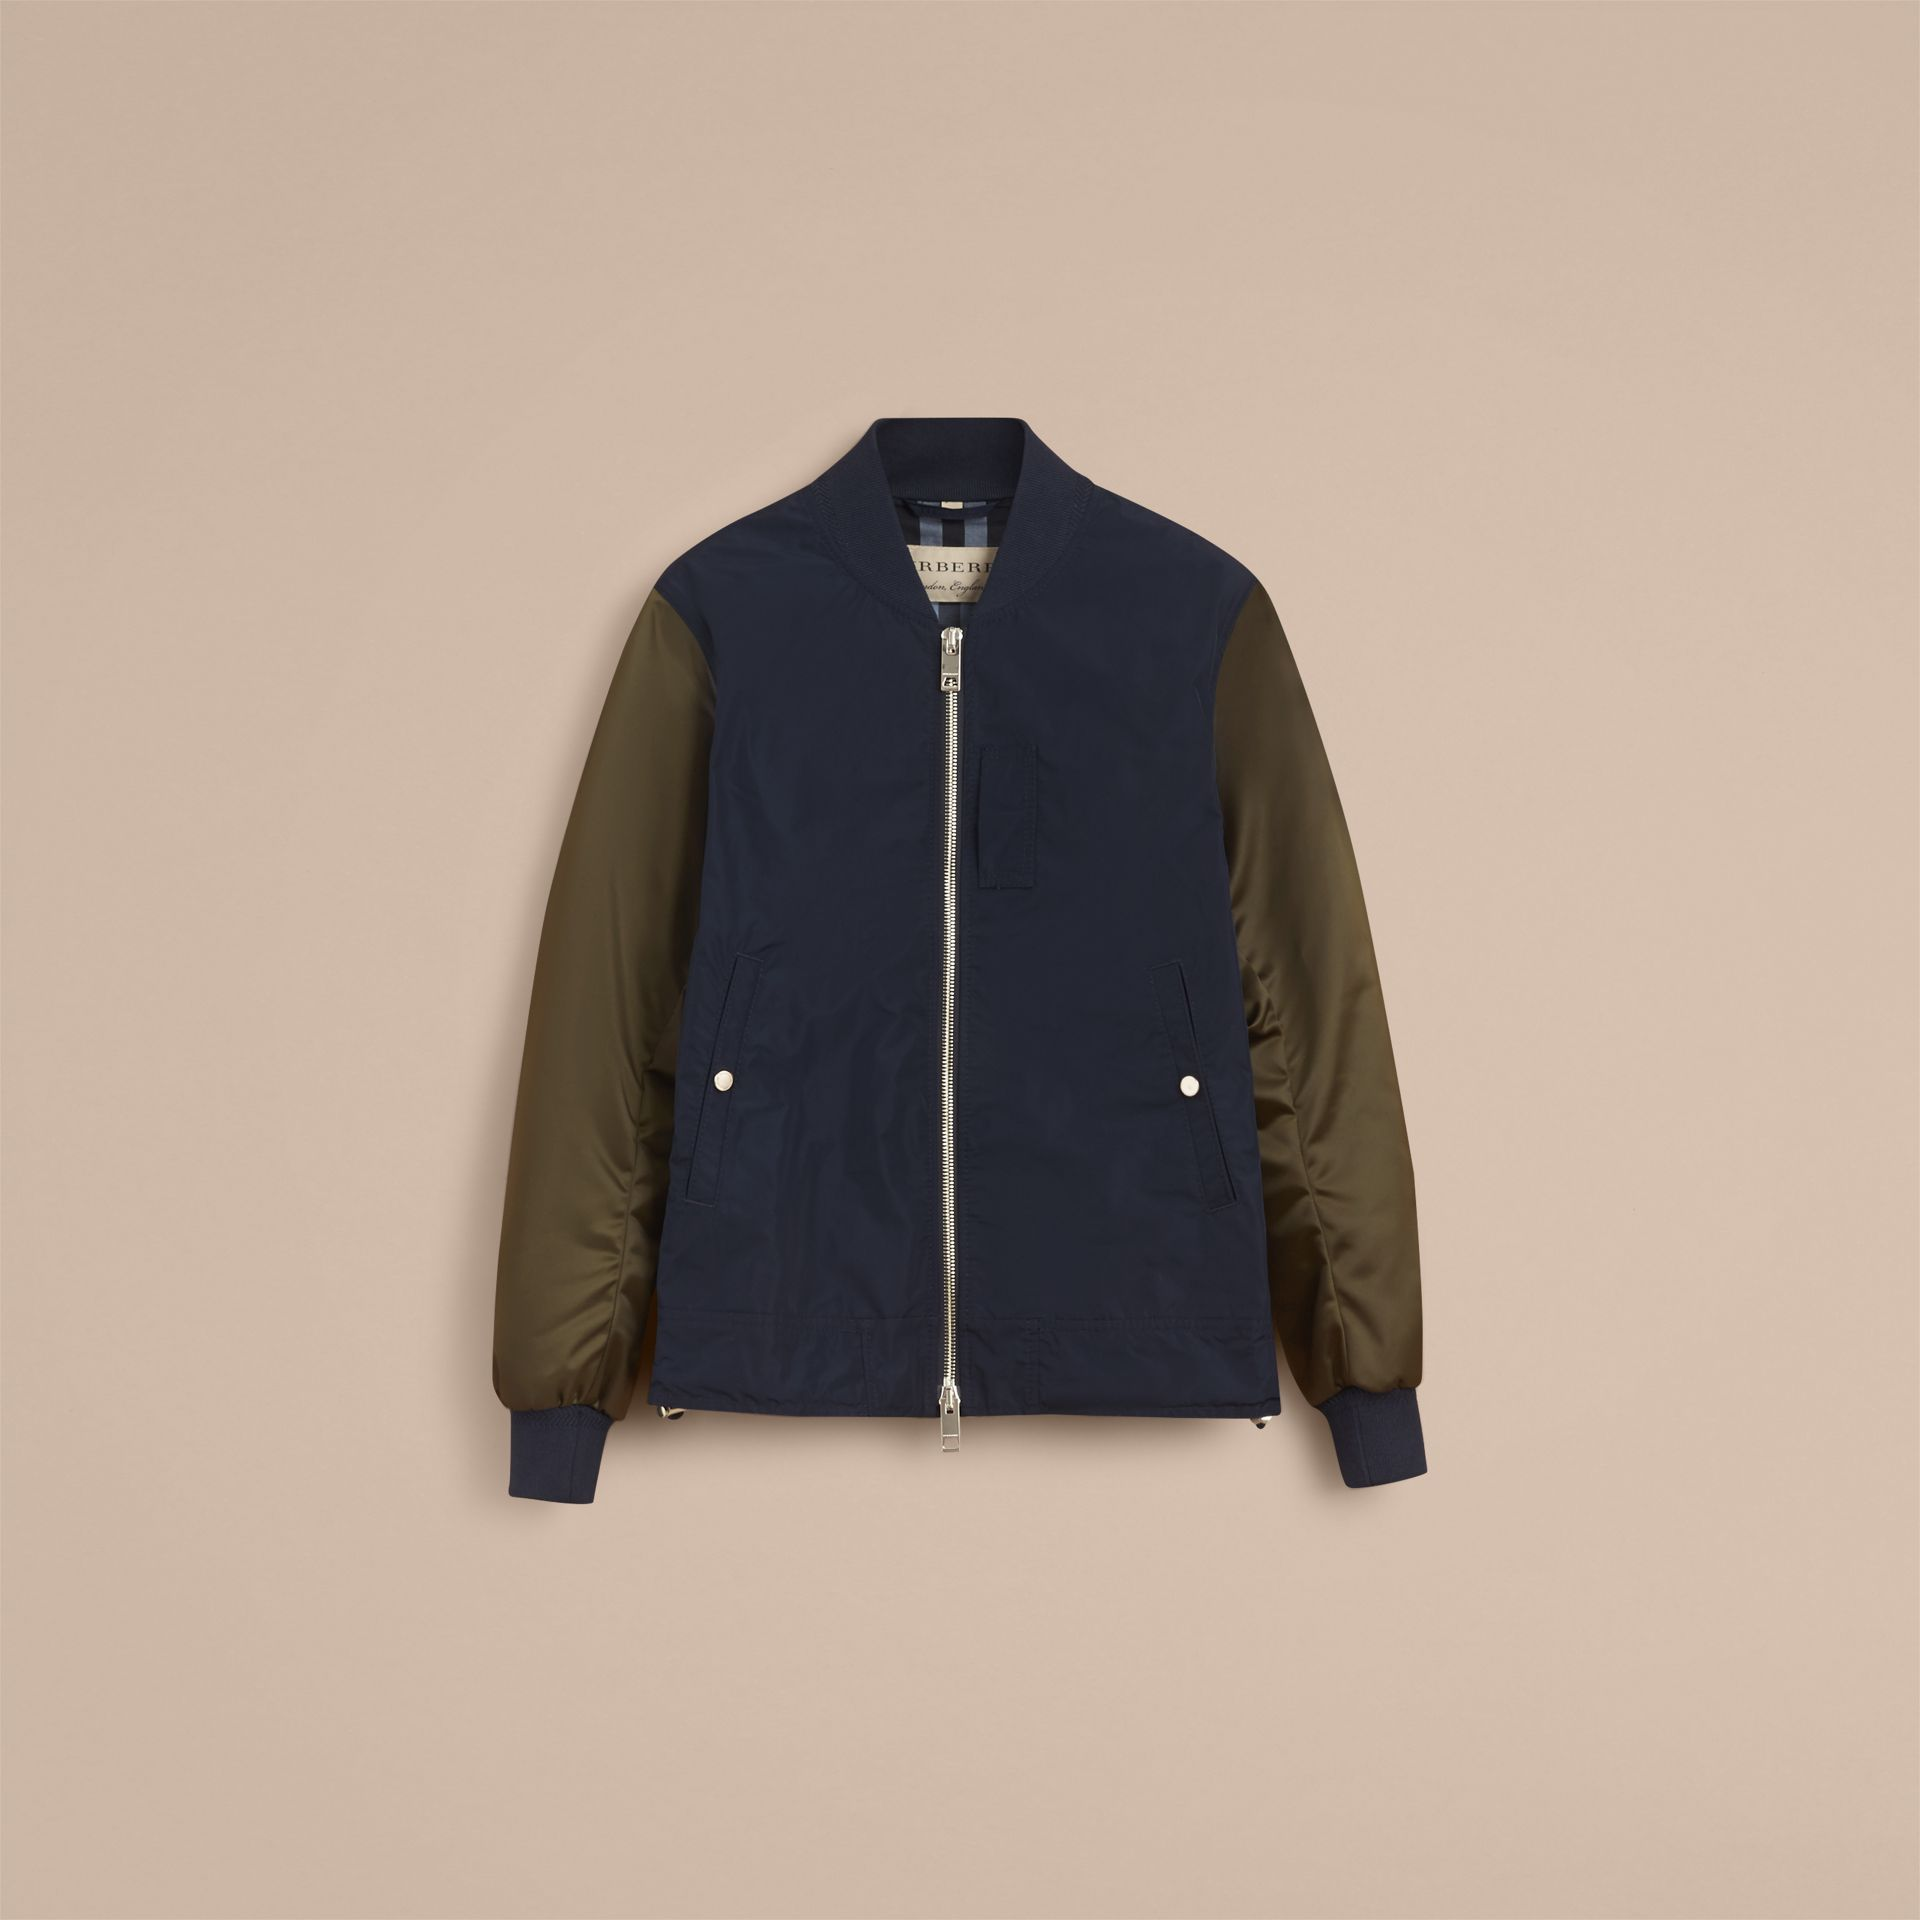 Two-tone Shape-memory Taffeta Bomber Jacket - Men | Burberry - gallery image 4